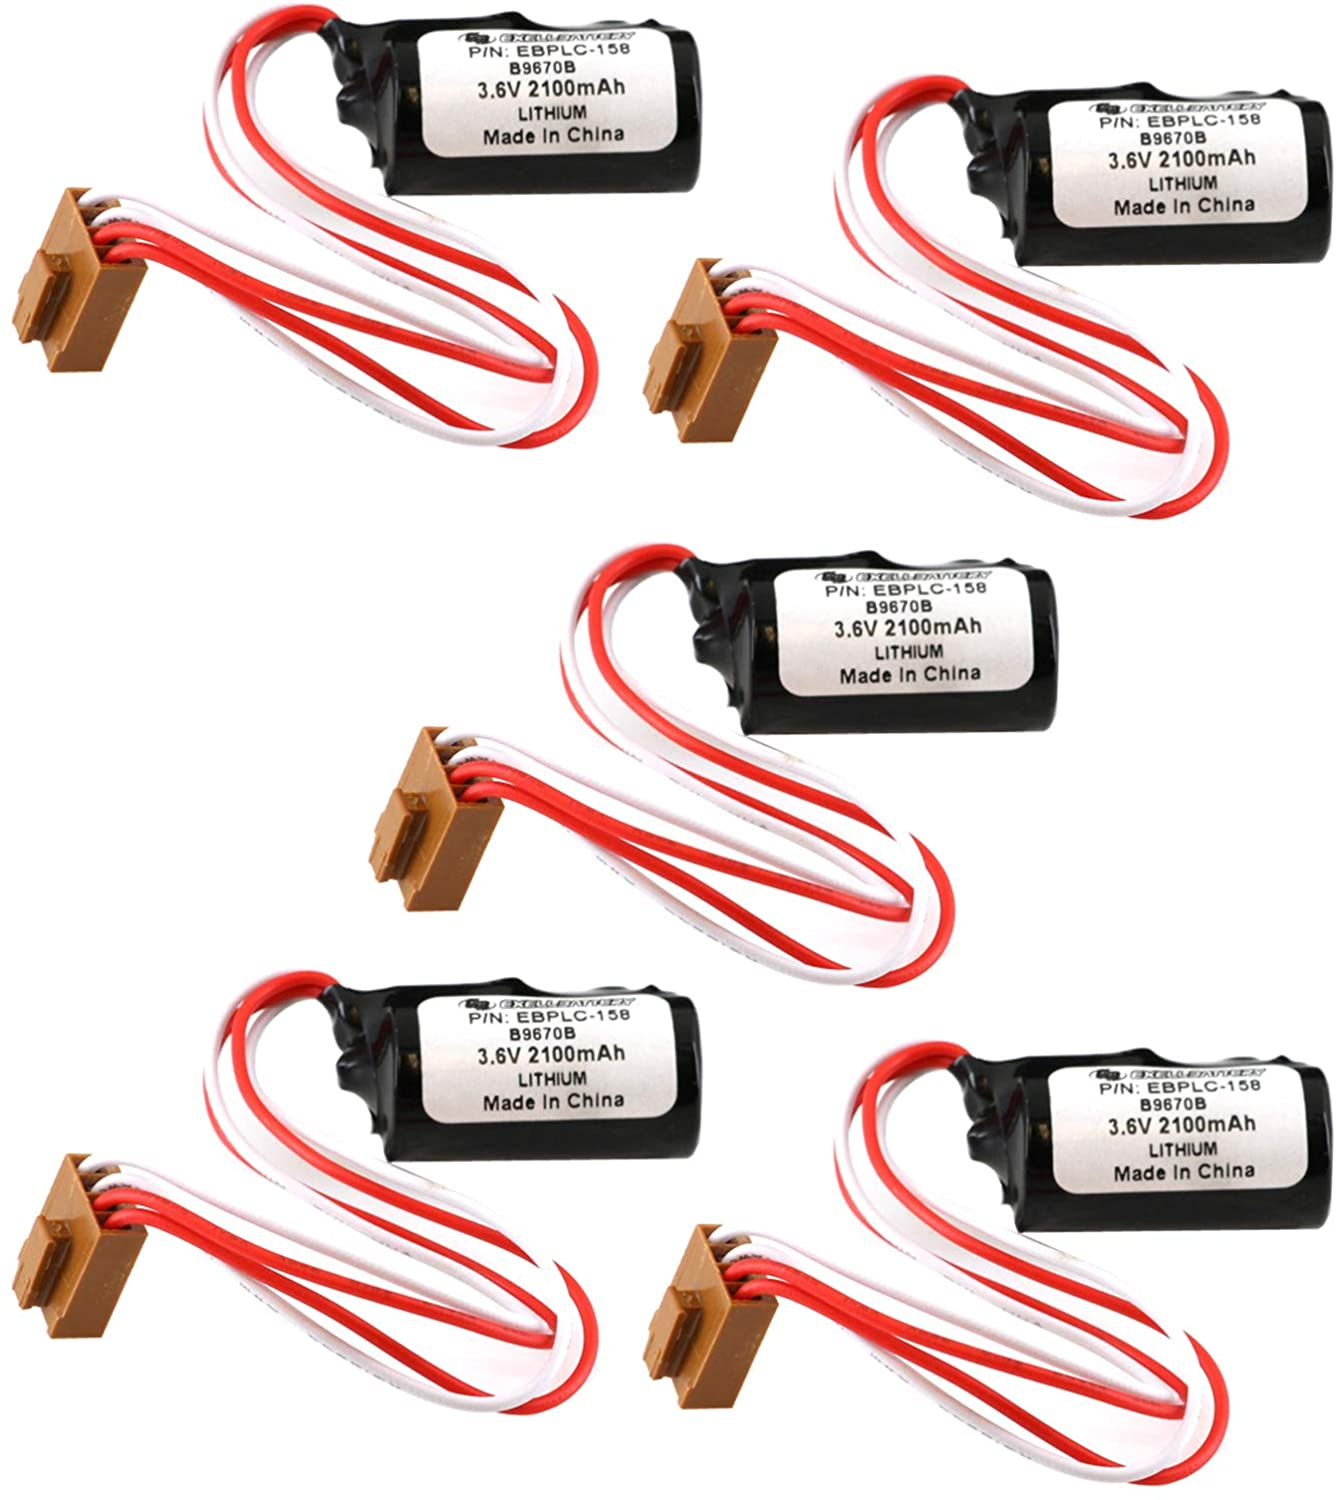 (5-Pack) 3.6V Lithium PLC Computer Battery Replaces Newark 09H1517, Omron: 3G2A9-BAT08, C1000H, C1000HF, C1000HF Series Controls, GT600 Series PLCS and Industrial Computers